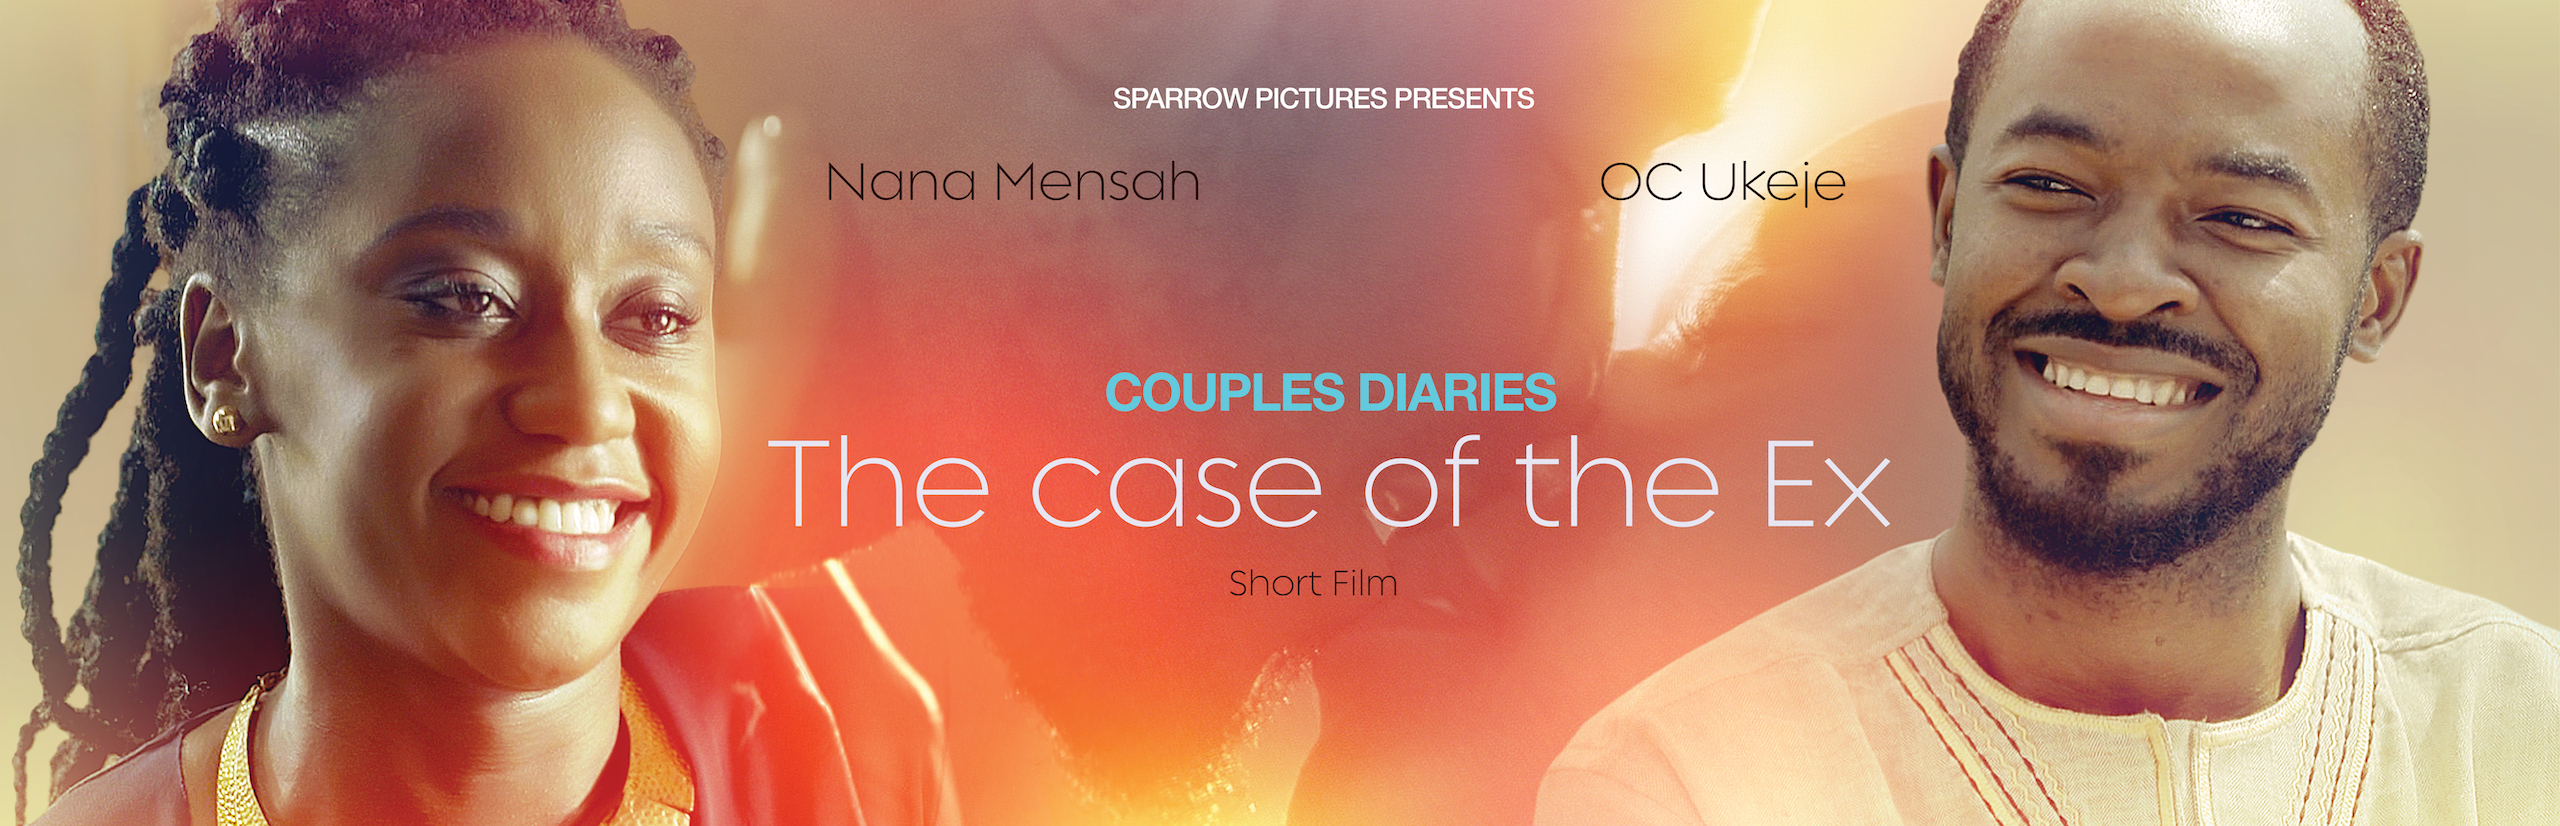 couples diaries: the case of the ex poster